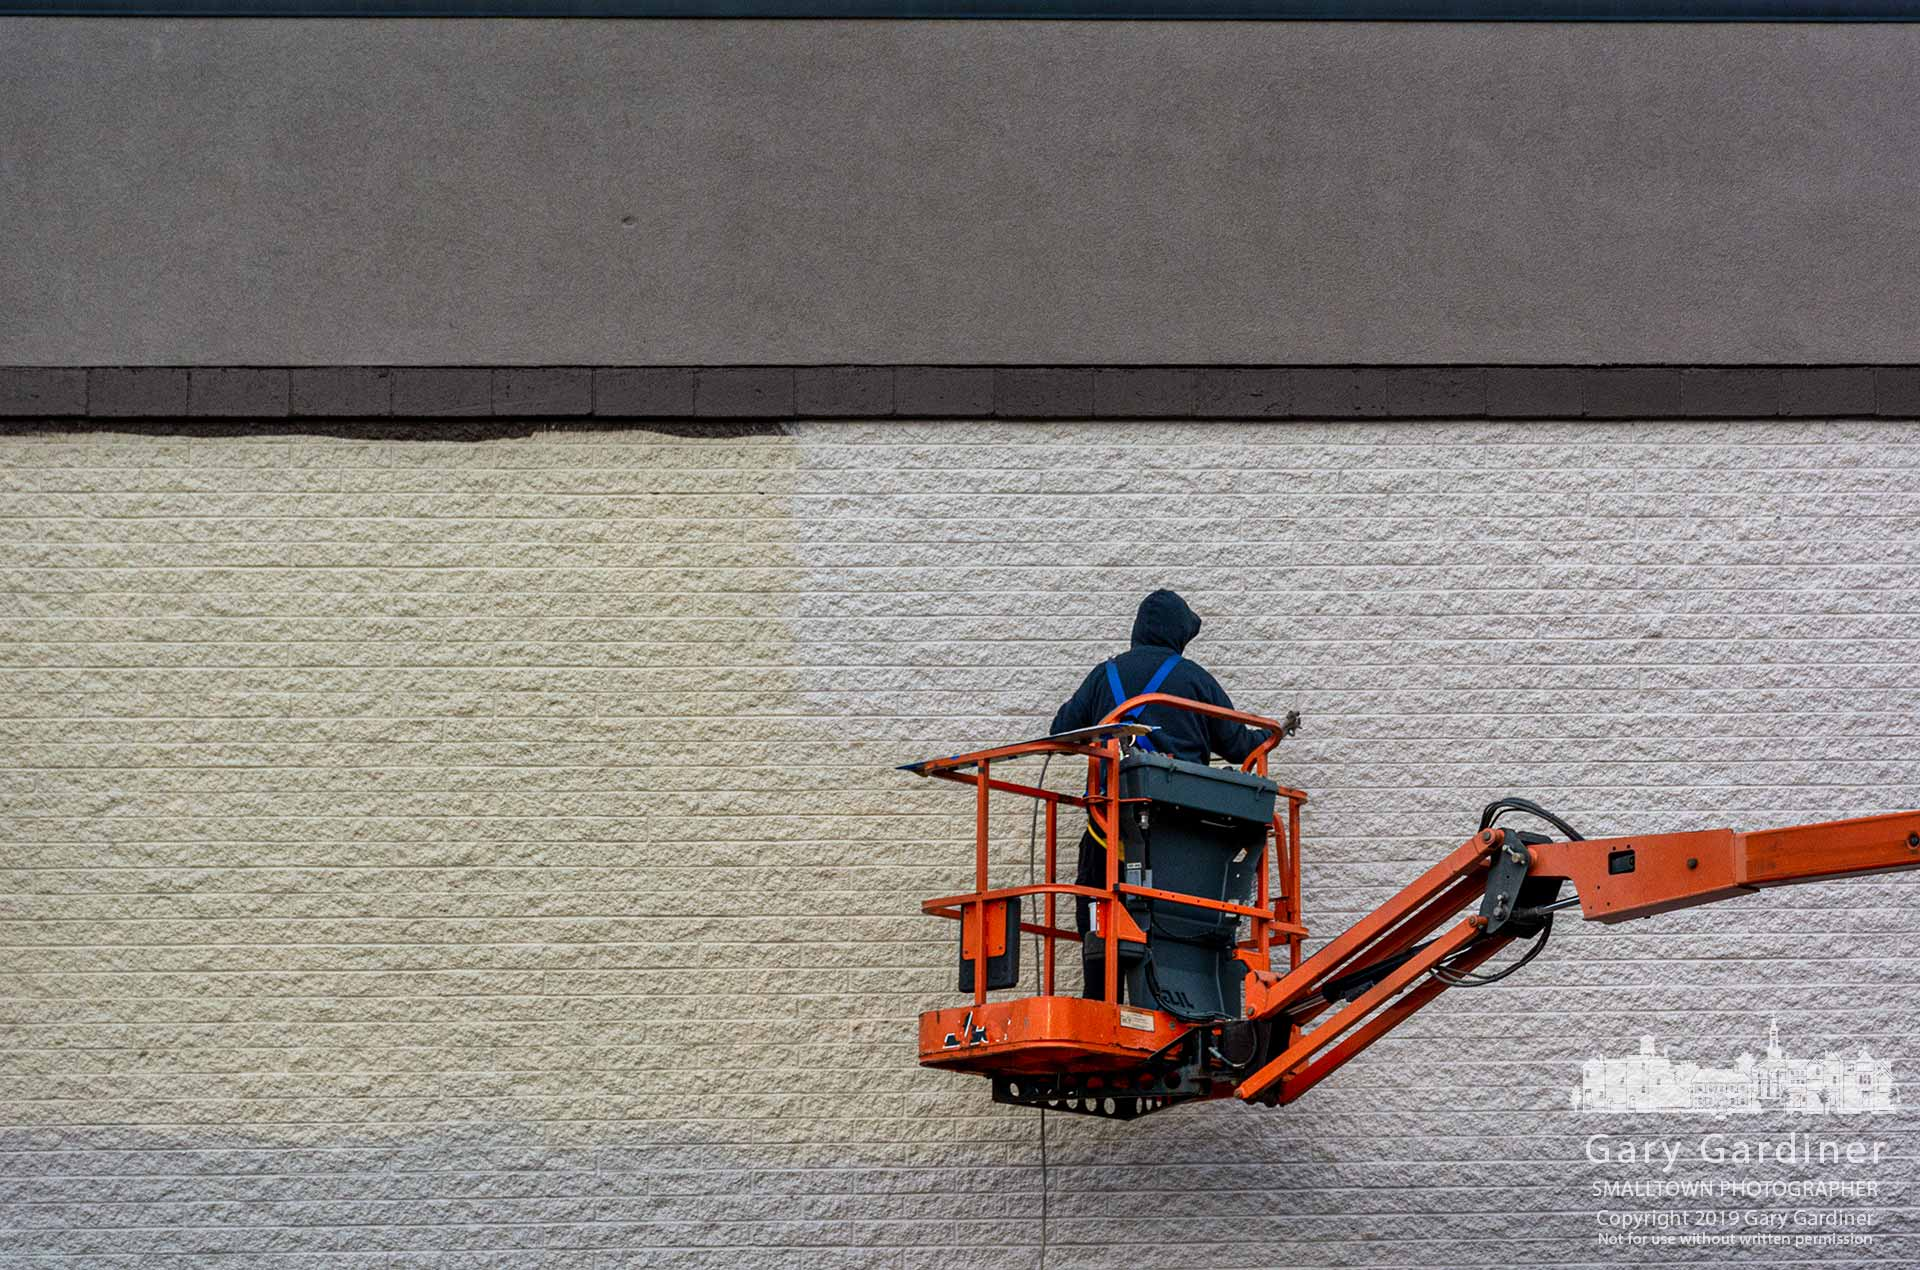 A painter sprays a slightly more neutral color paint on the exterior of the old Office Max building as it is converted to a Planet Fitness health club. My Final Photo for Dec. 12, 2019.